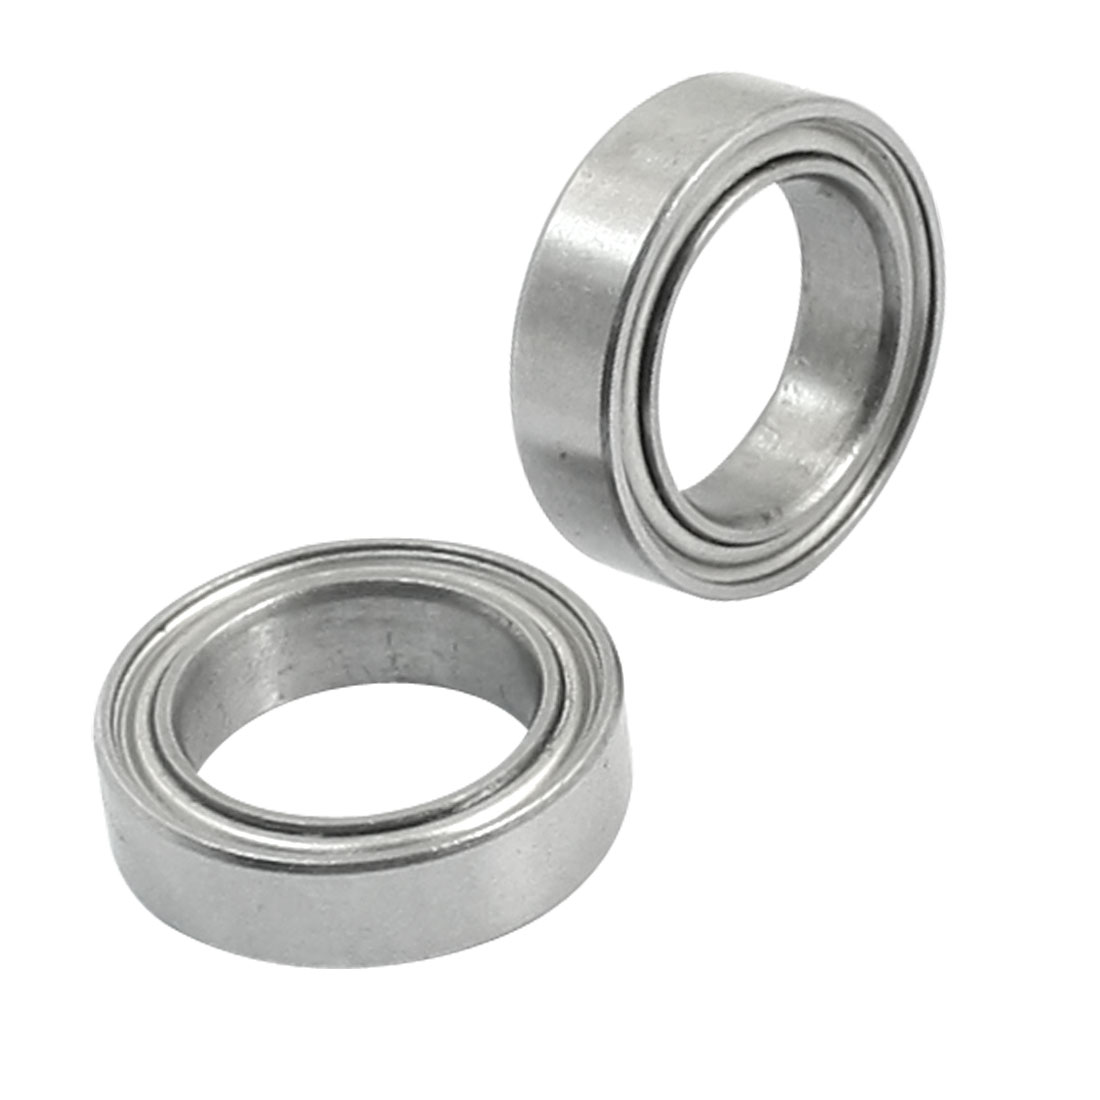 2pcs Repairing 15x10x4mm Ball Bearing for HSP RC Model On/Off-Road Cars